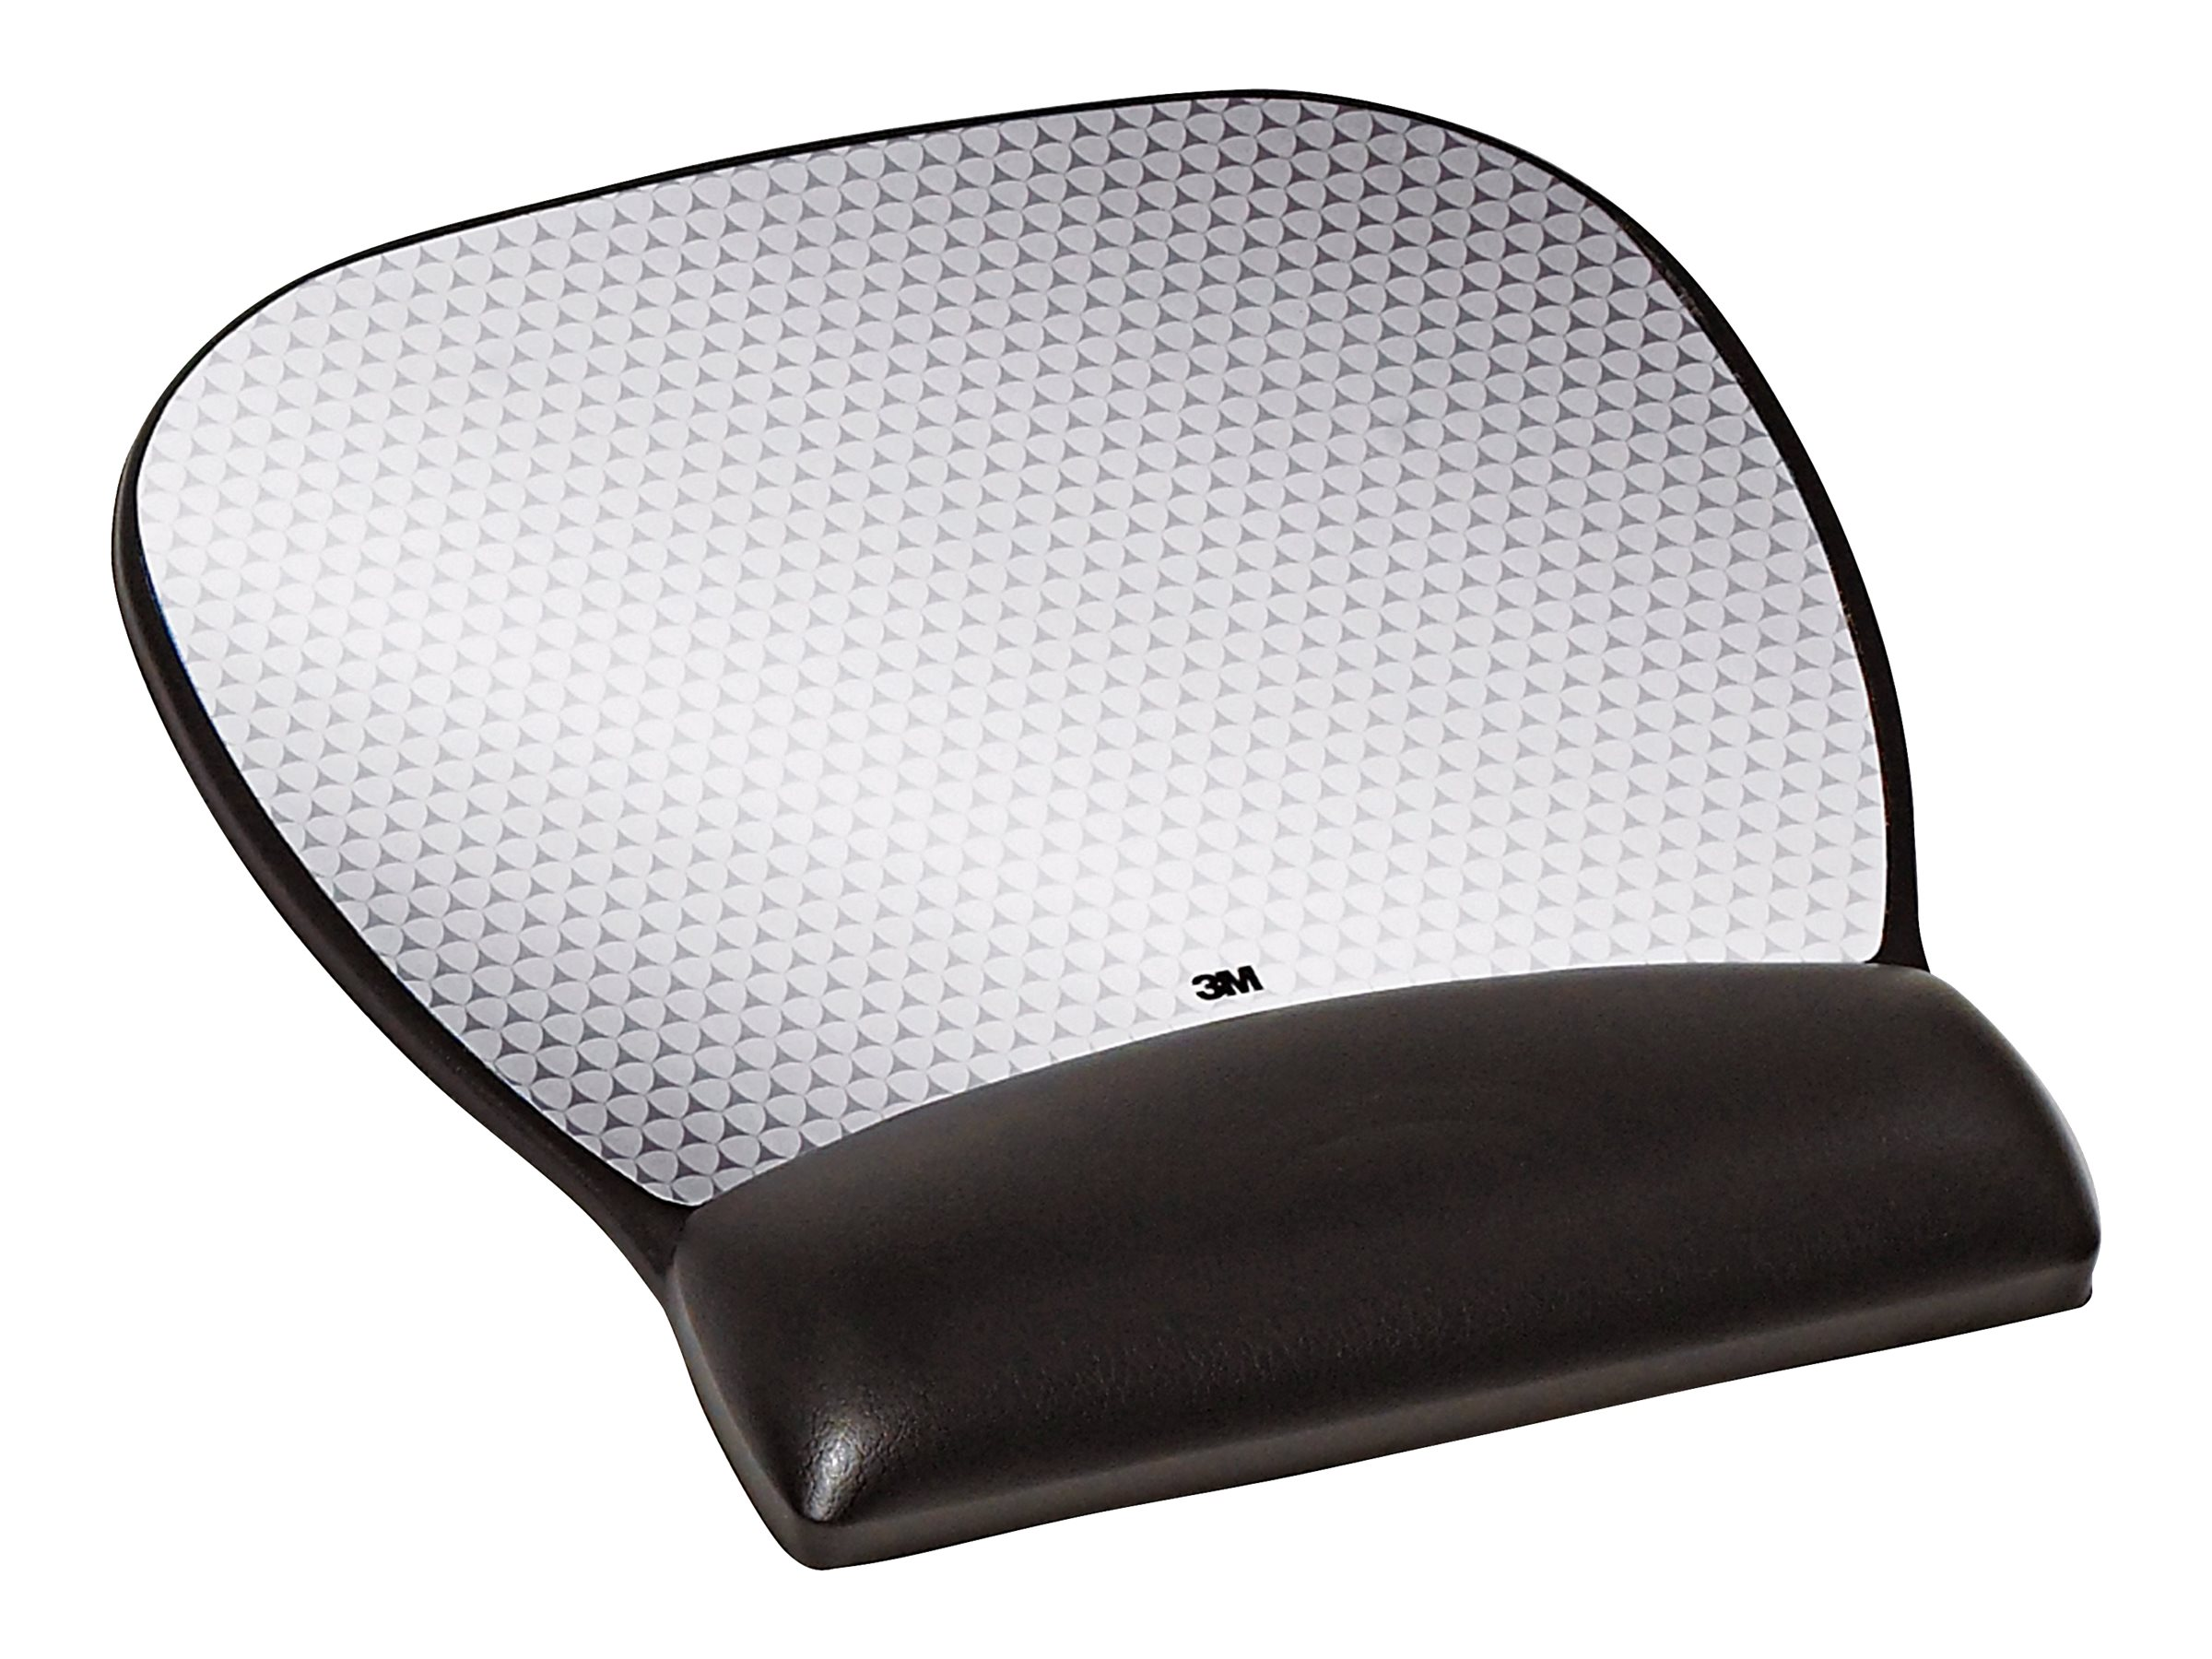 3M Precise mouse pad with wrist pillow